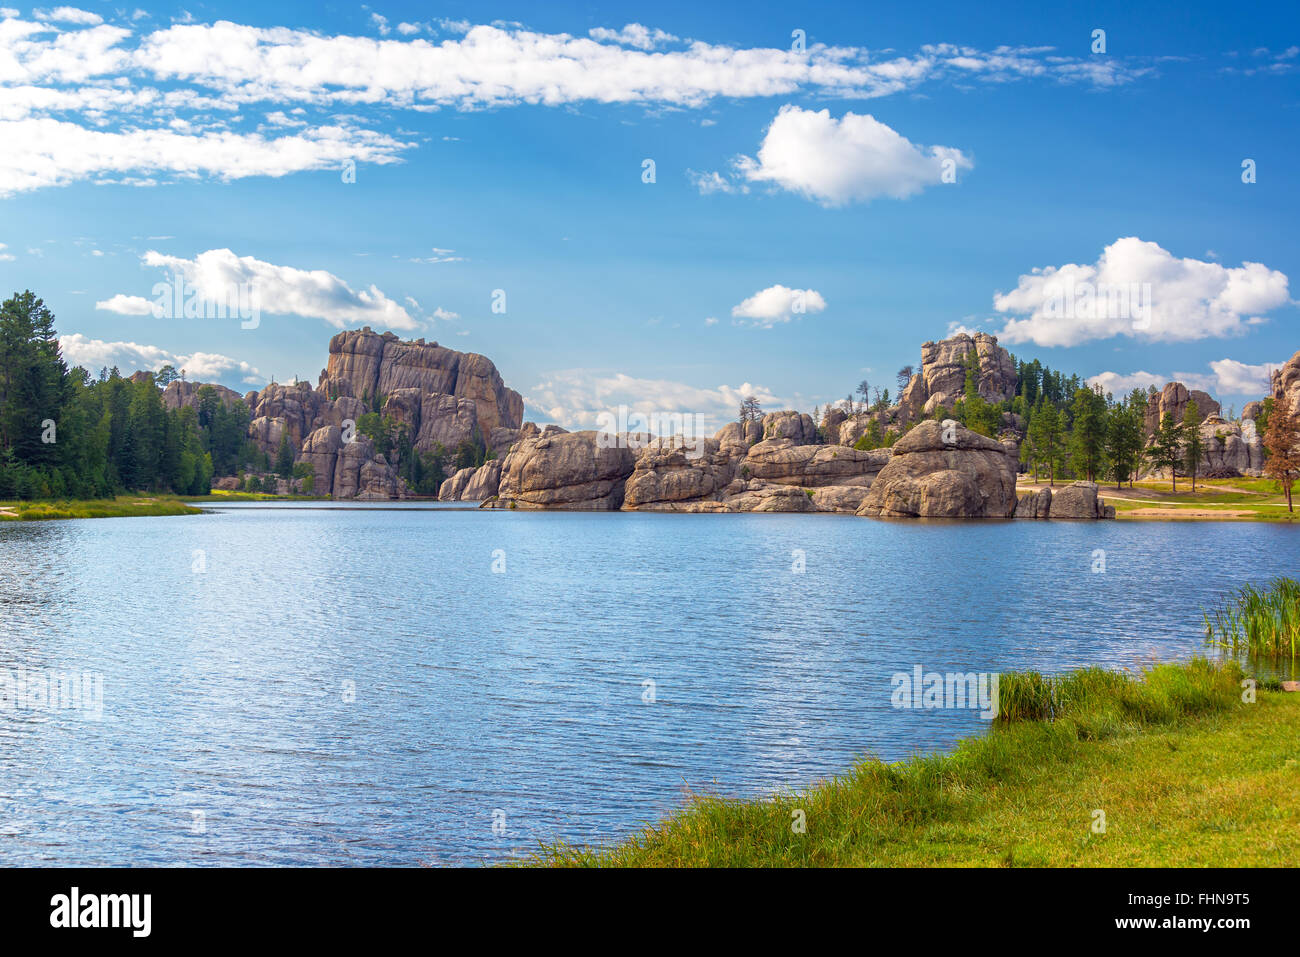 Dramatic rock formations on the shore of Sylvan Lake in Custer State Park - Stock Image